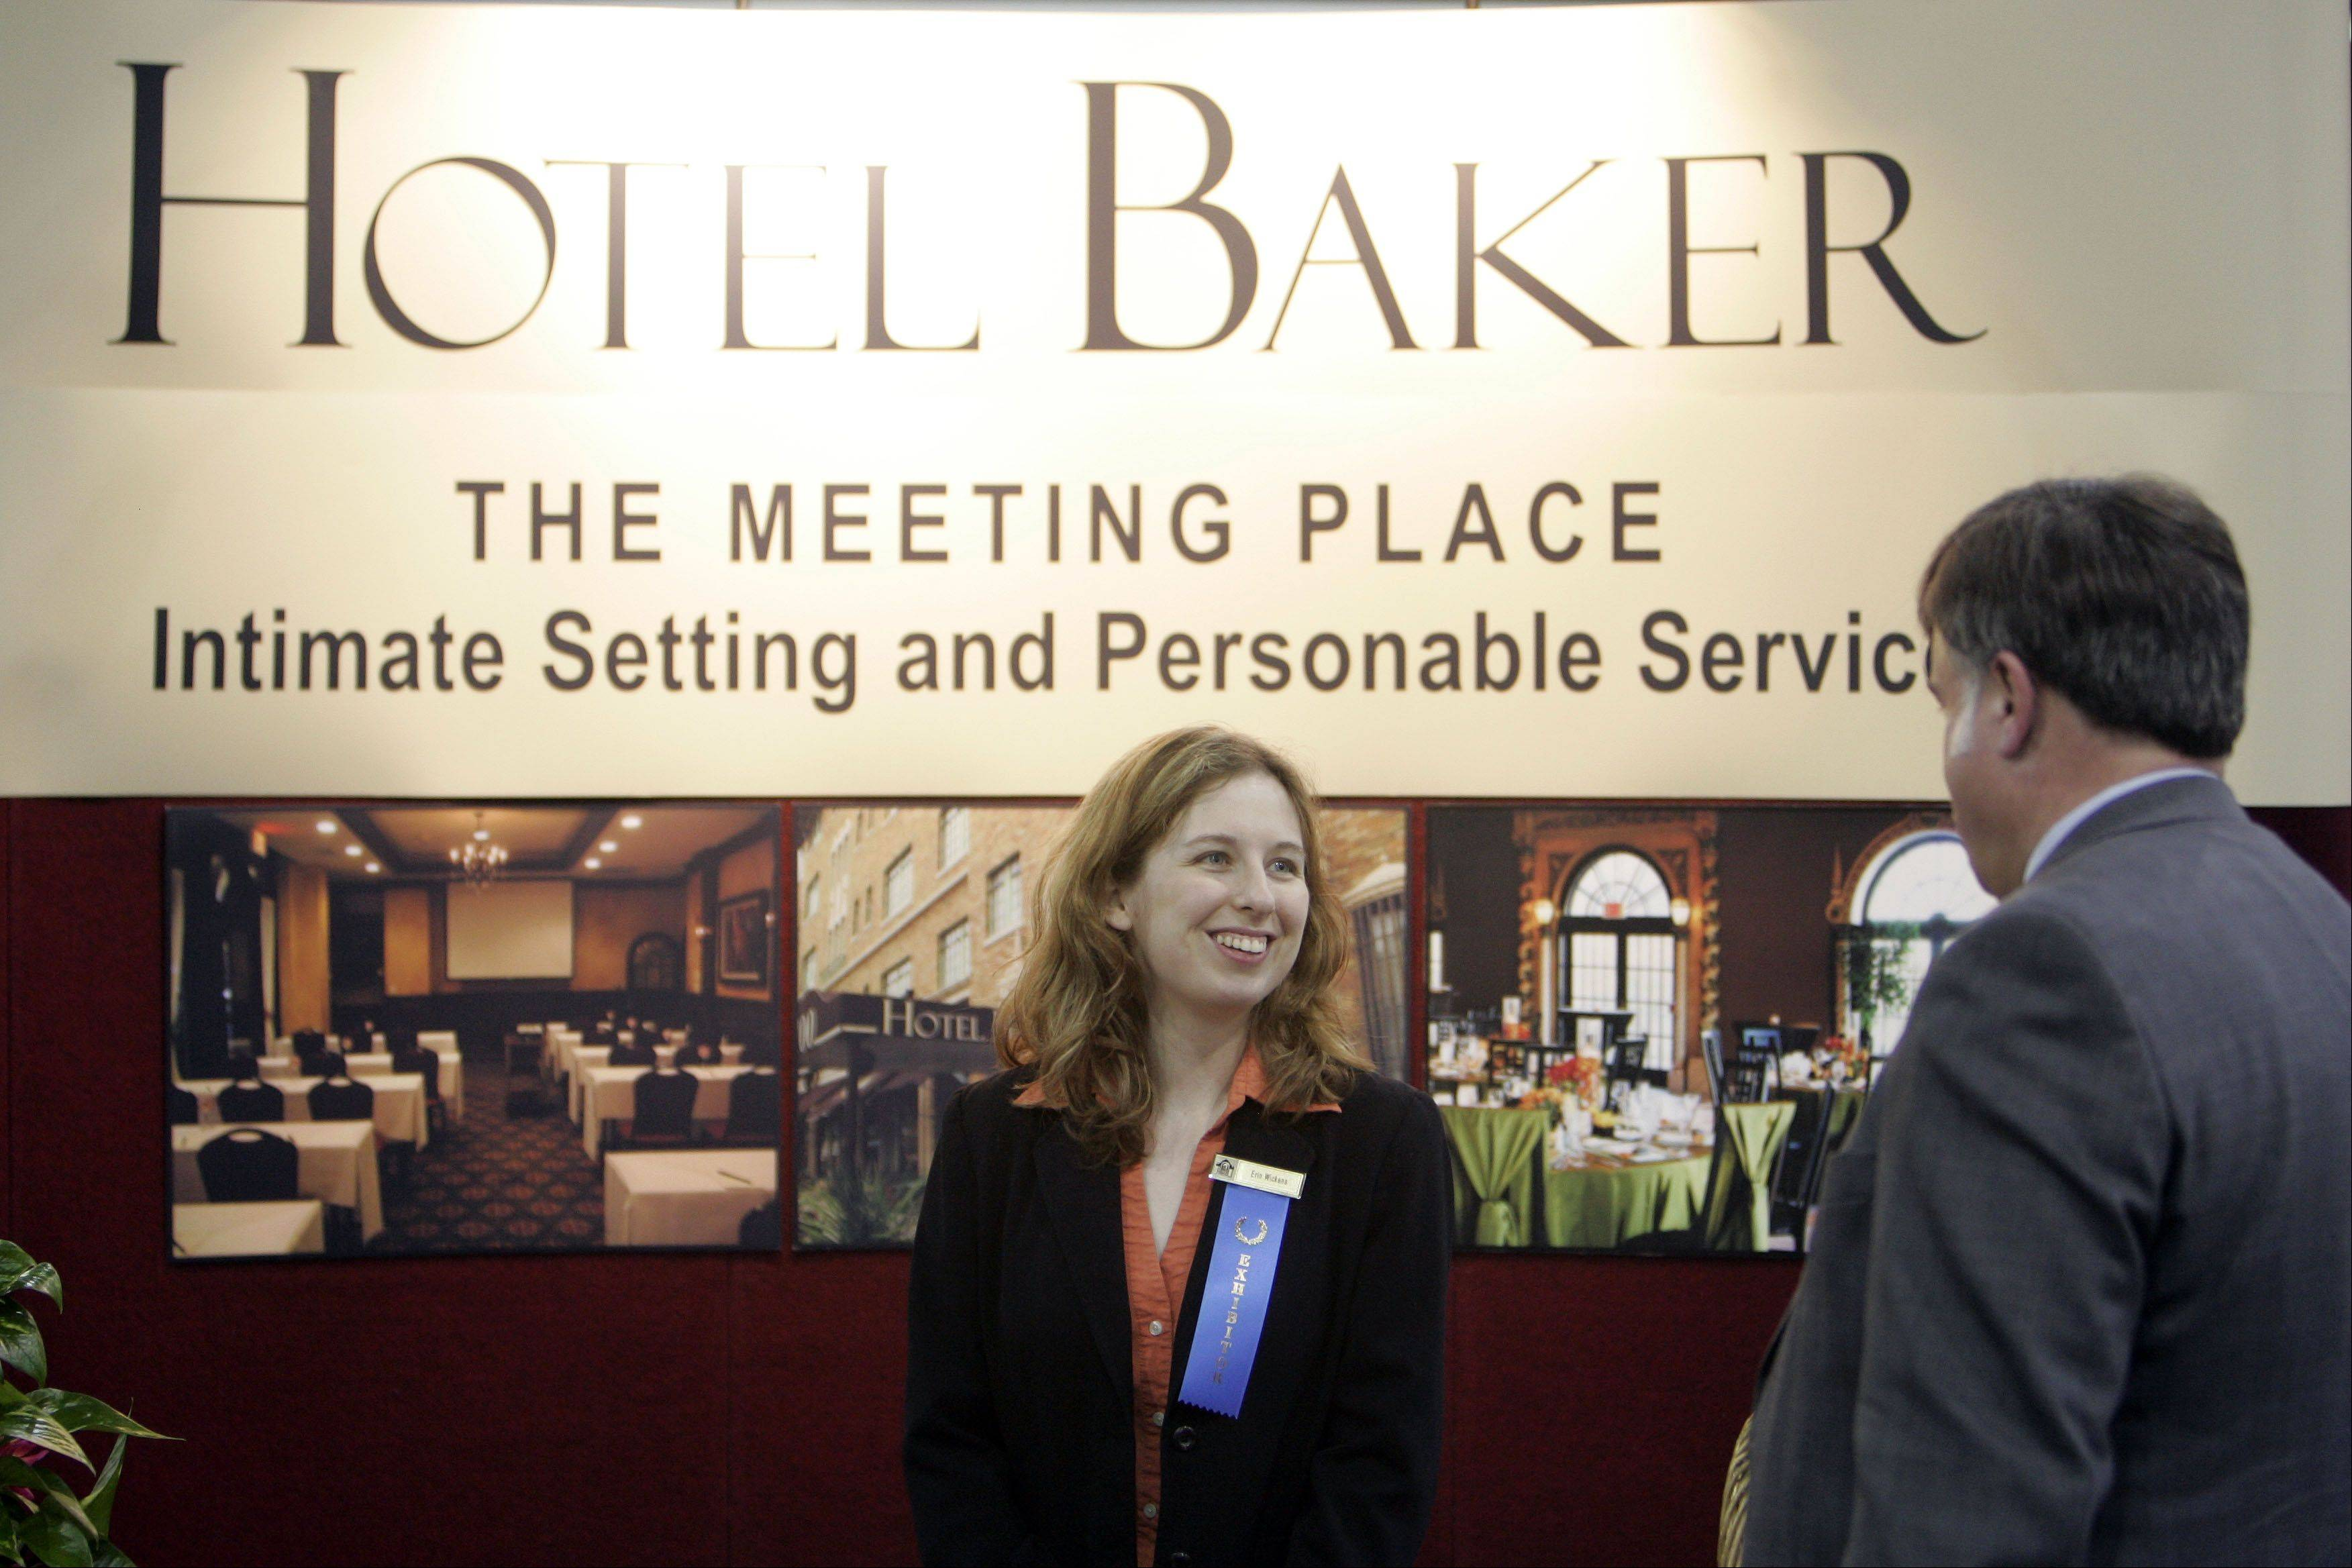 Hotel Baker sales manager Erin Wickens talks with a prospective customer during last year's Rolling Down the River expo at Pheasant Run in St. Charles. This year's event is from noon to 6 p.m. Wednesday, April 25, at the MegaCenter.